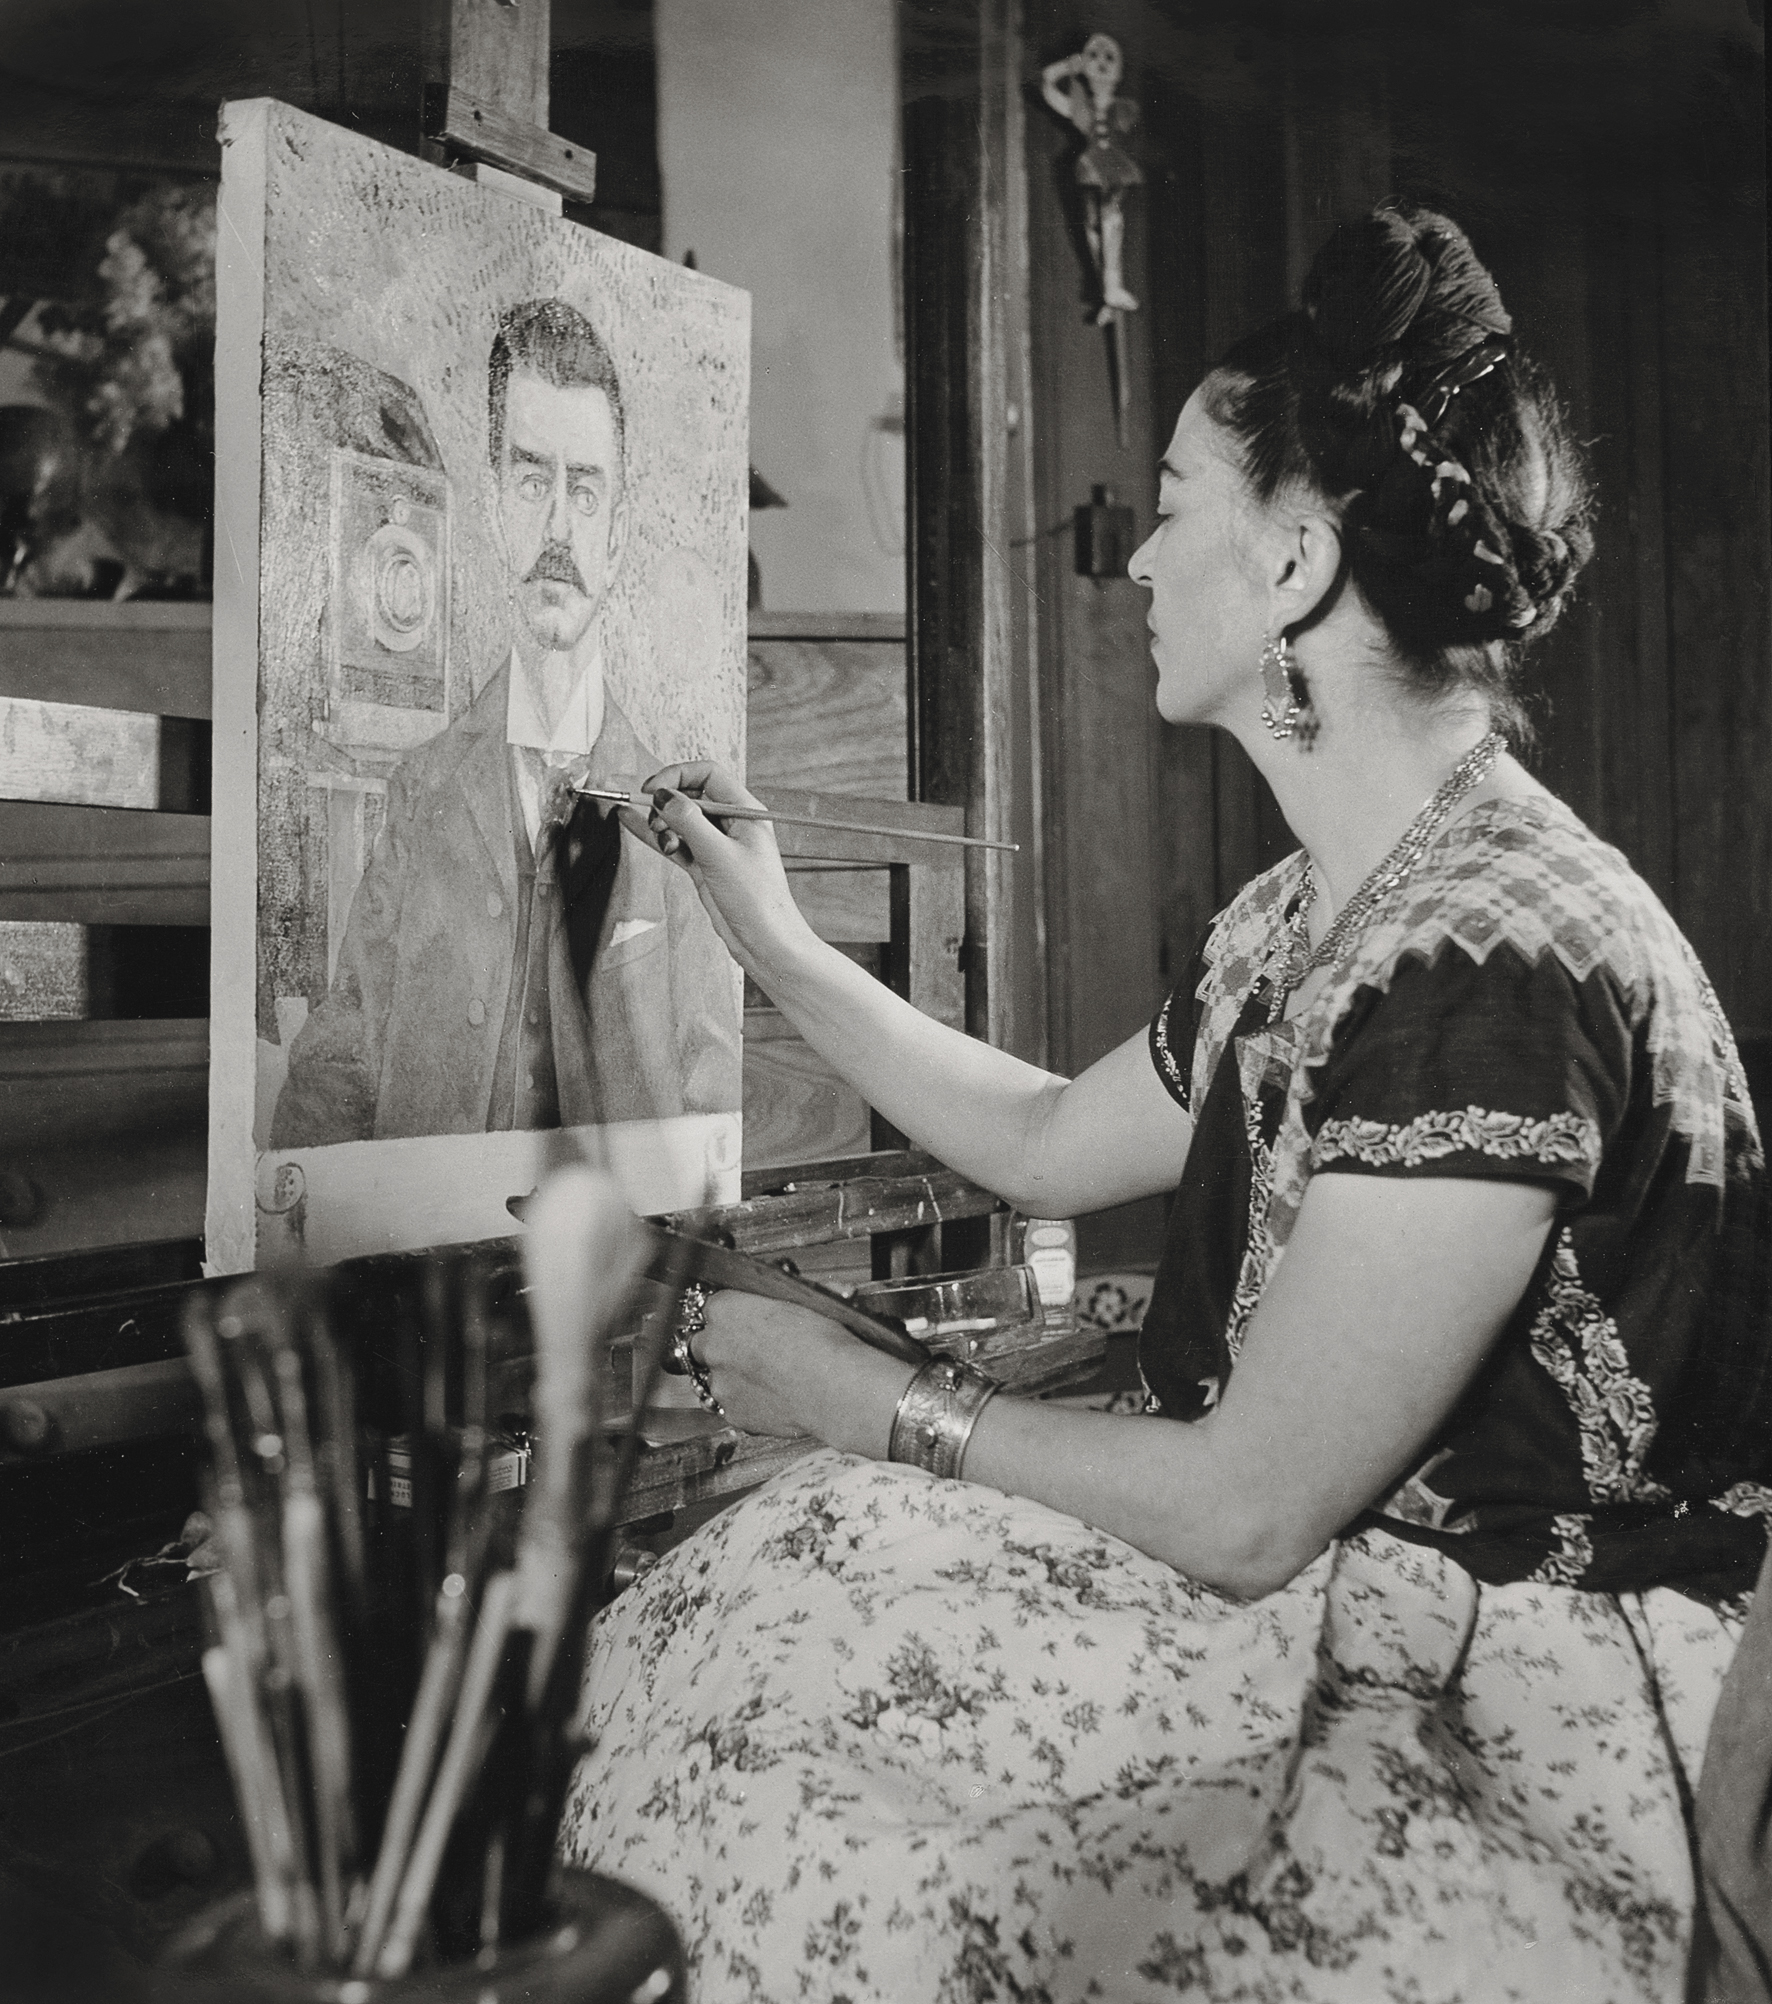 Frida painting the portrait of her father  by Gisèle Freund,1951 ©Frida Kahlo Museum